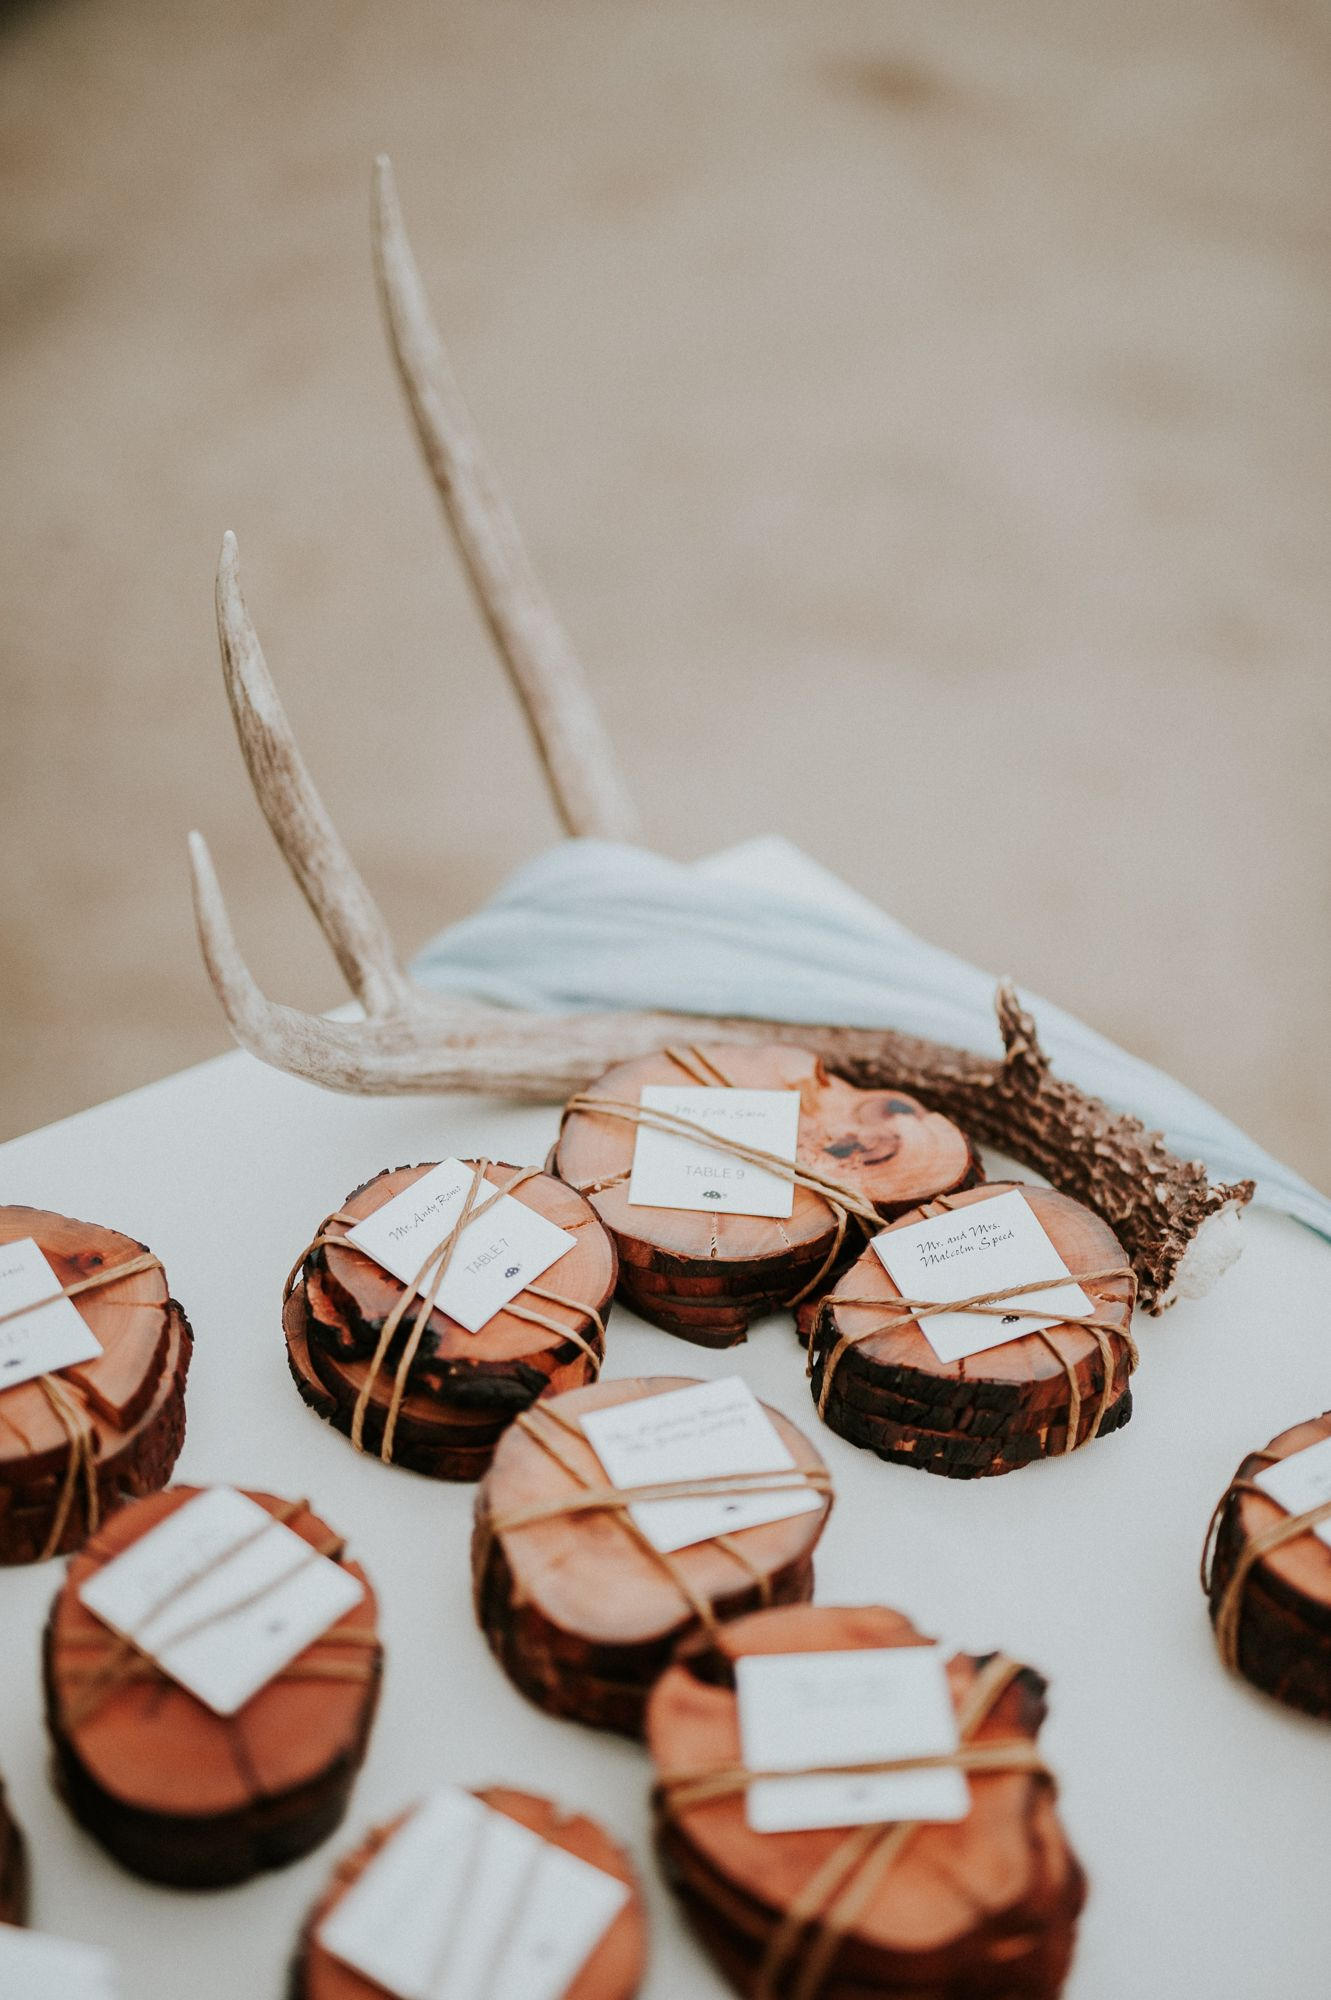 Wood Slice Coaster Favors Are A Pretty Natural Accent To Your